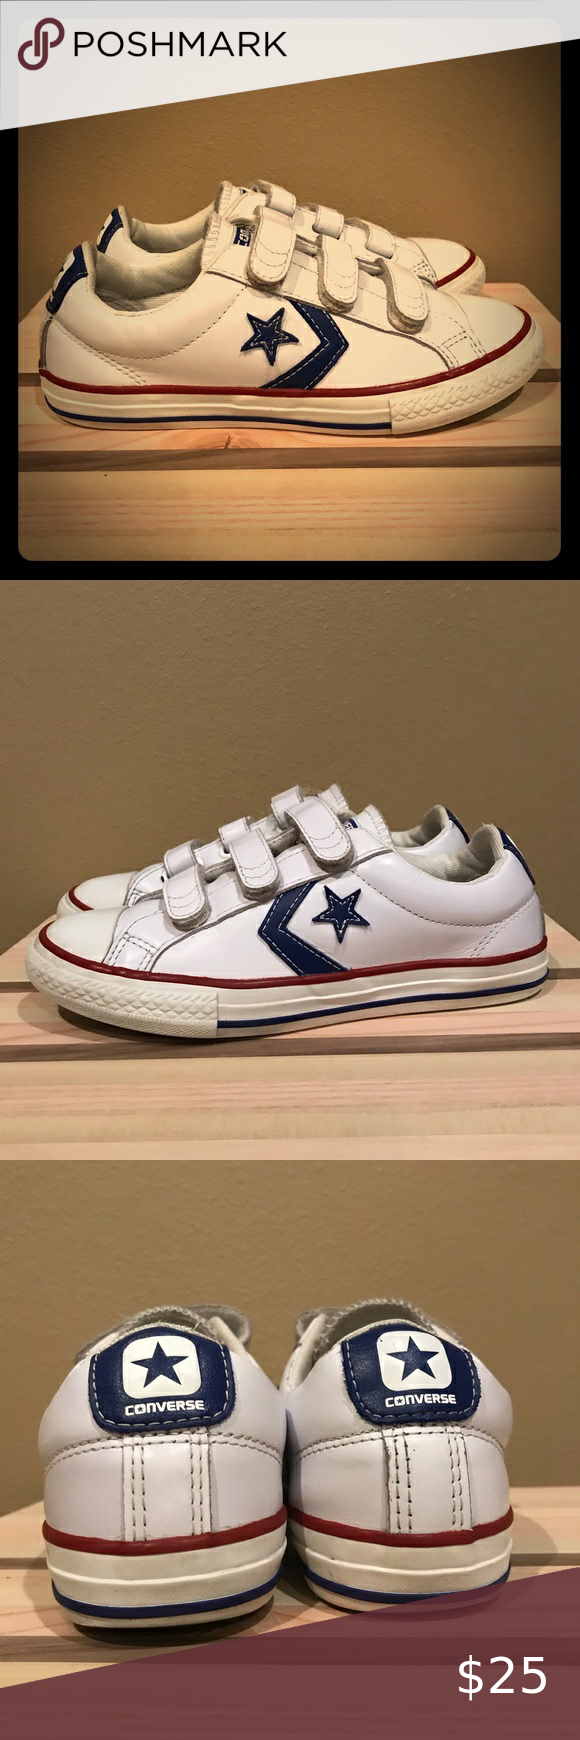 Converse CONS Velcro Sneakers White One